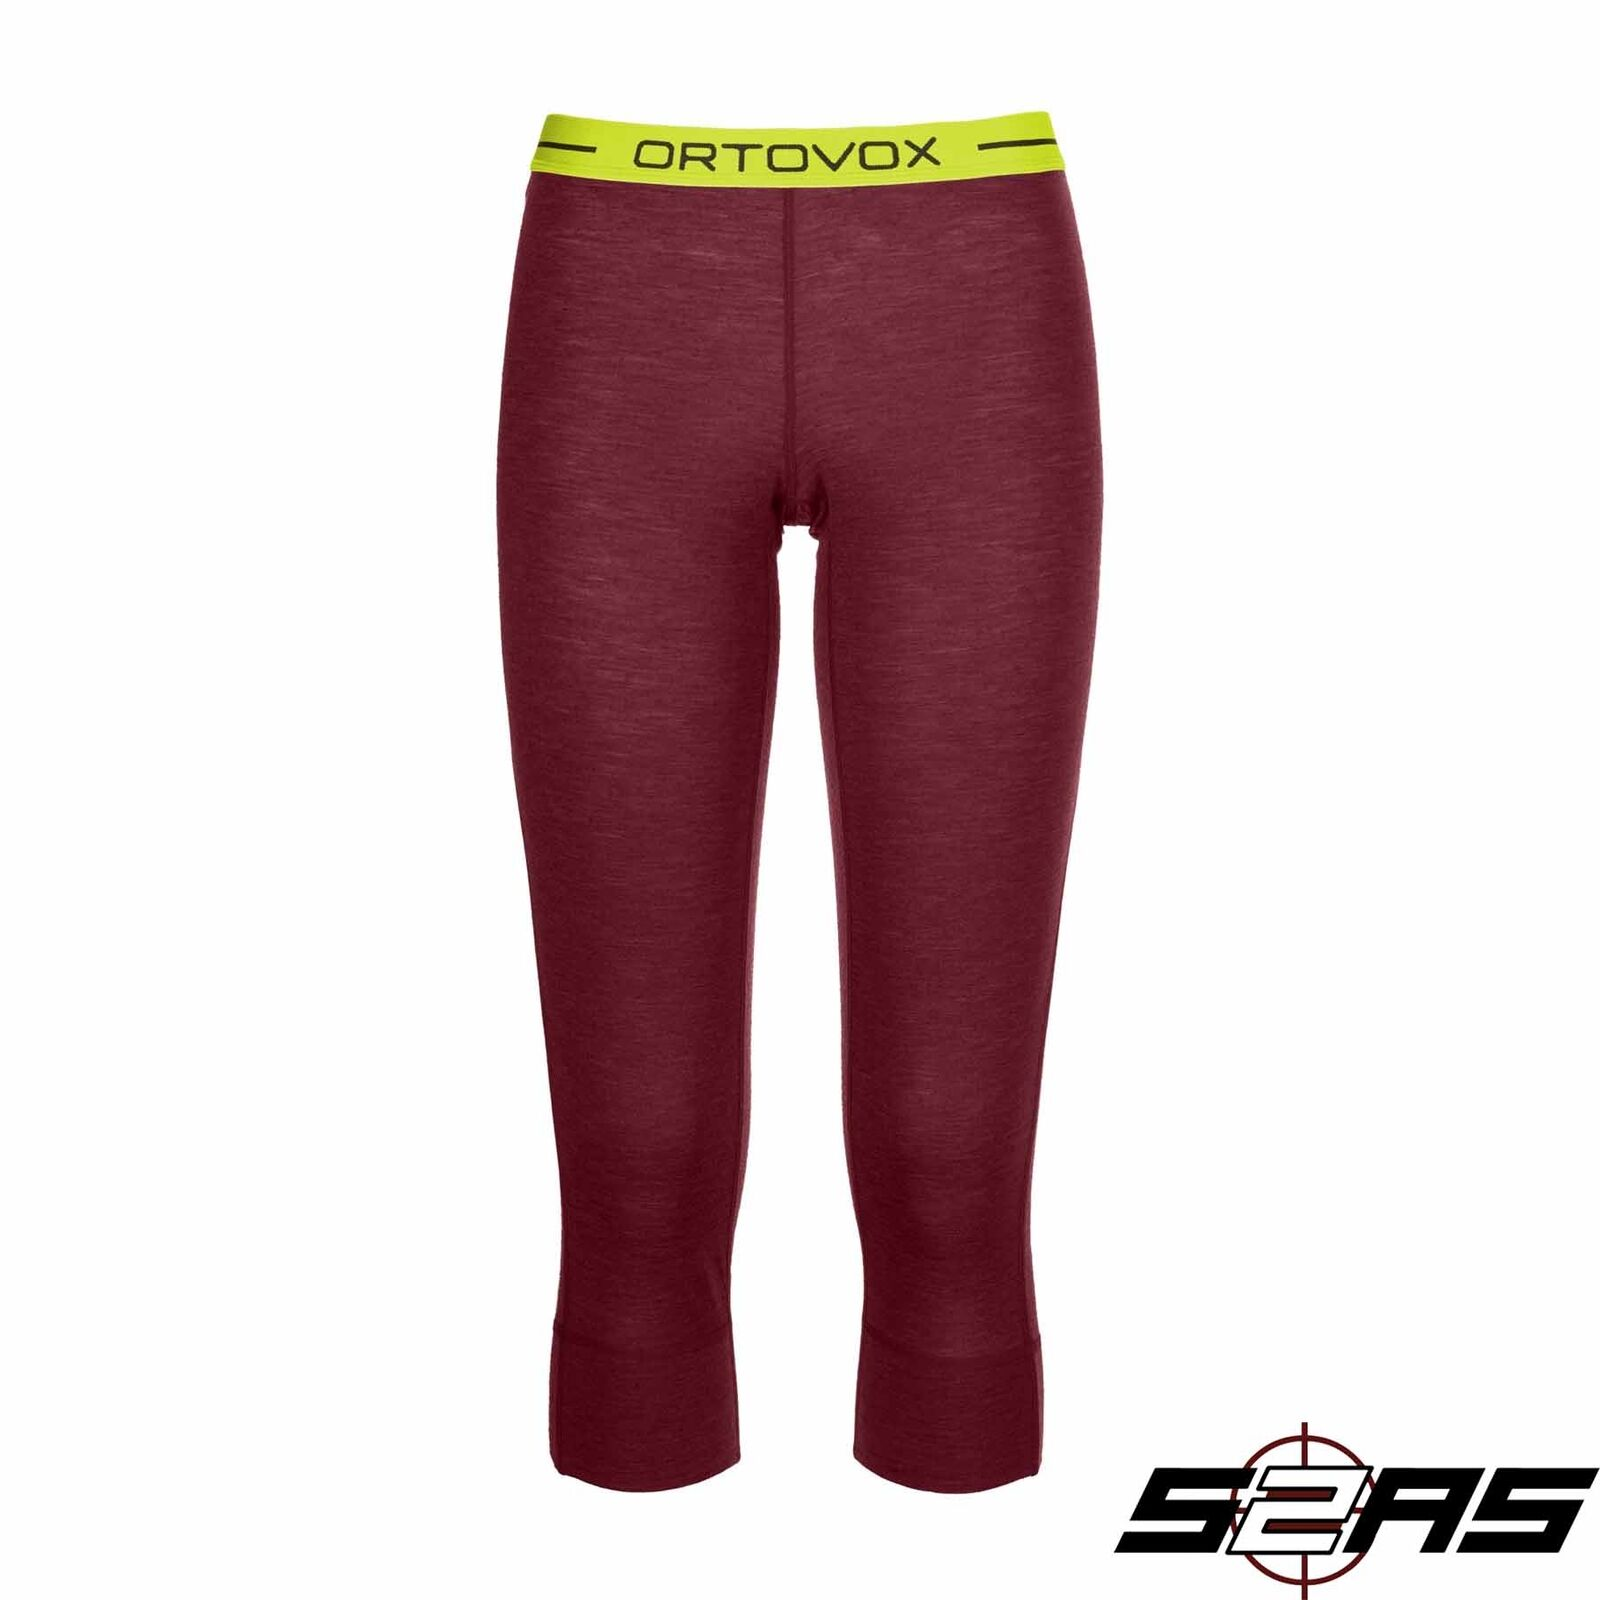 2019 Ortovox Merino Ultra  Short Pants Women's Thermal (Red)  factory outlet online discount sale